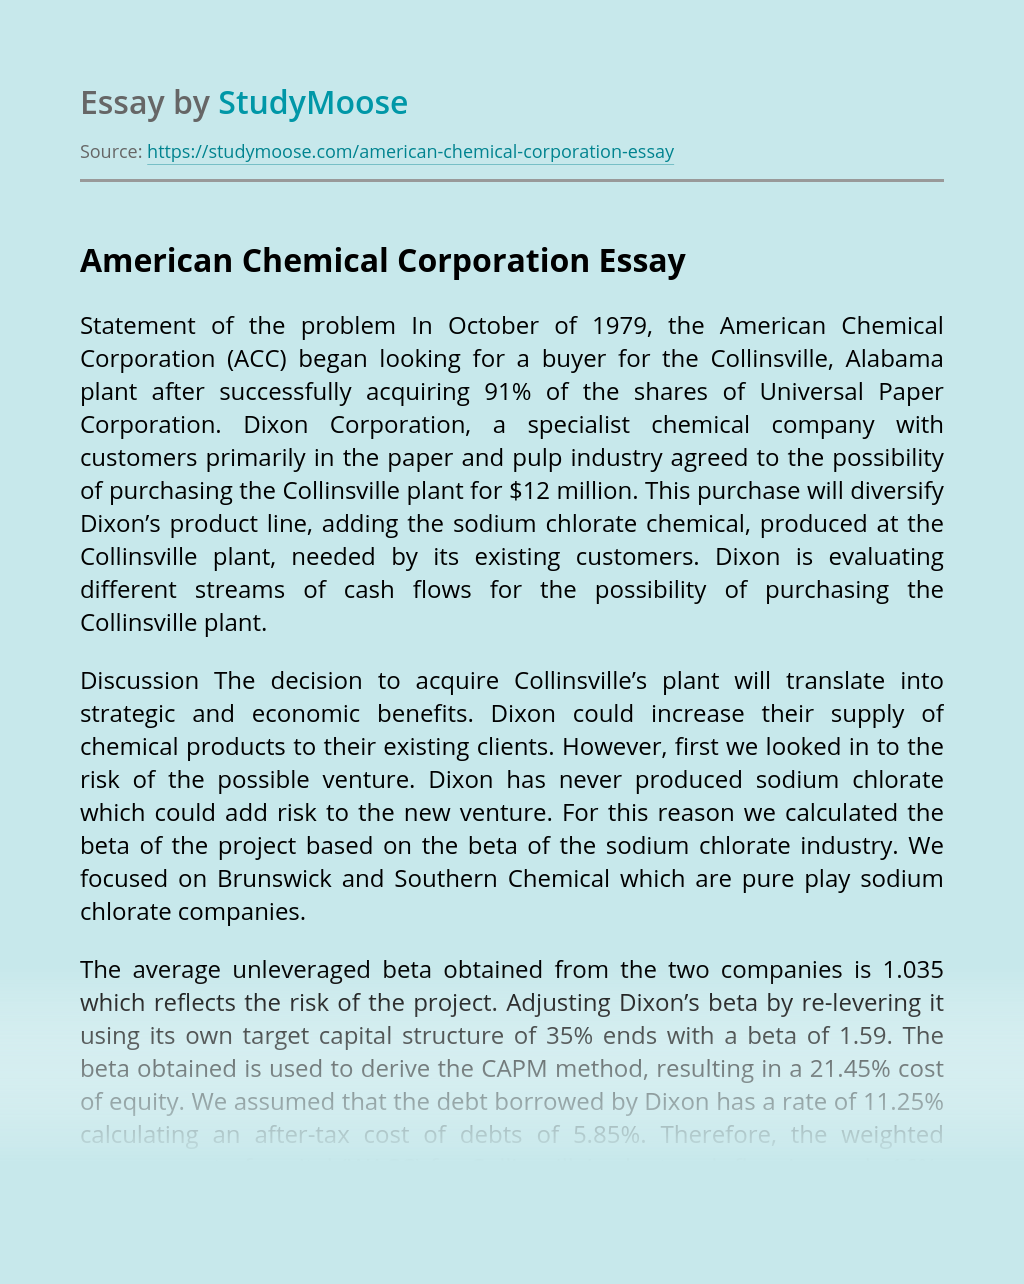 American Chemical Corporation